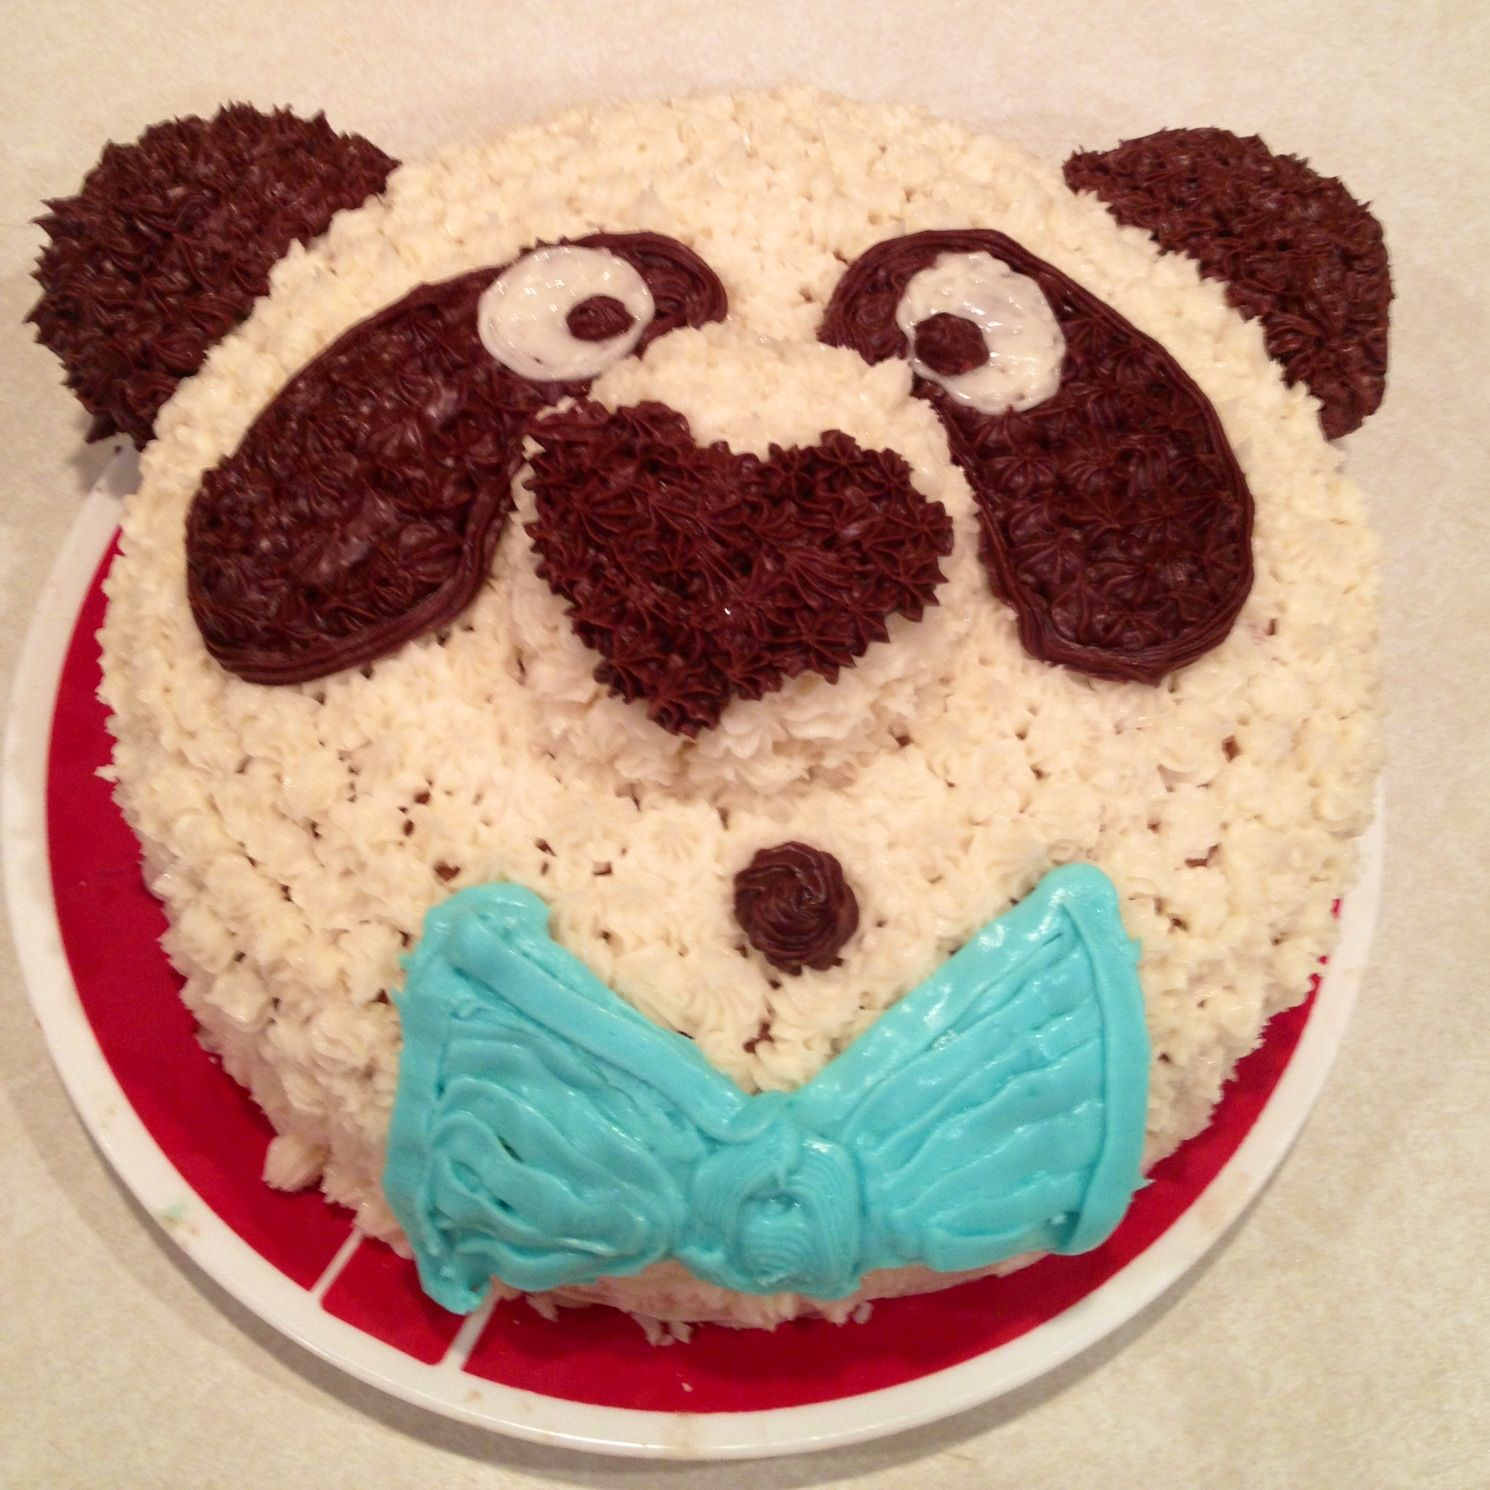 Panda Birthday Cake For My Daughter With Gluten Free Cupcake Nose Ears